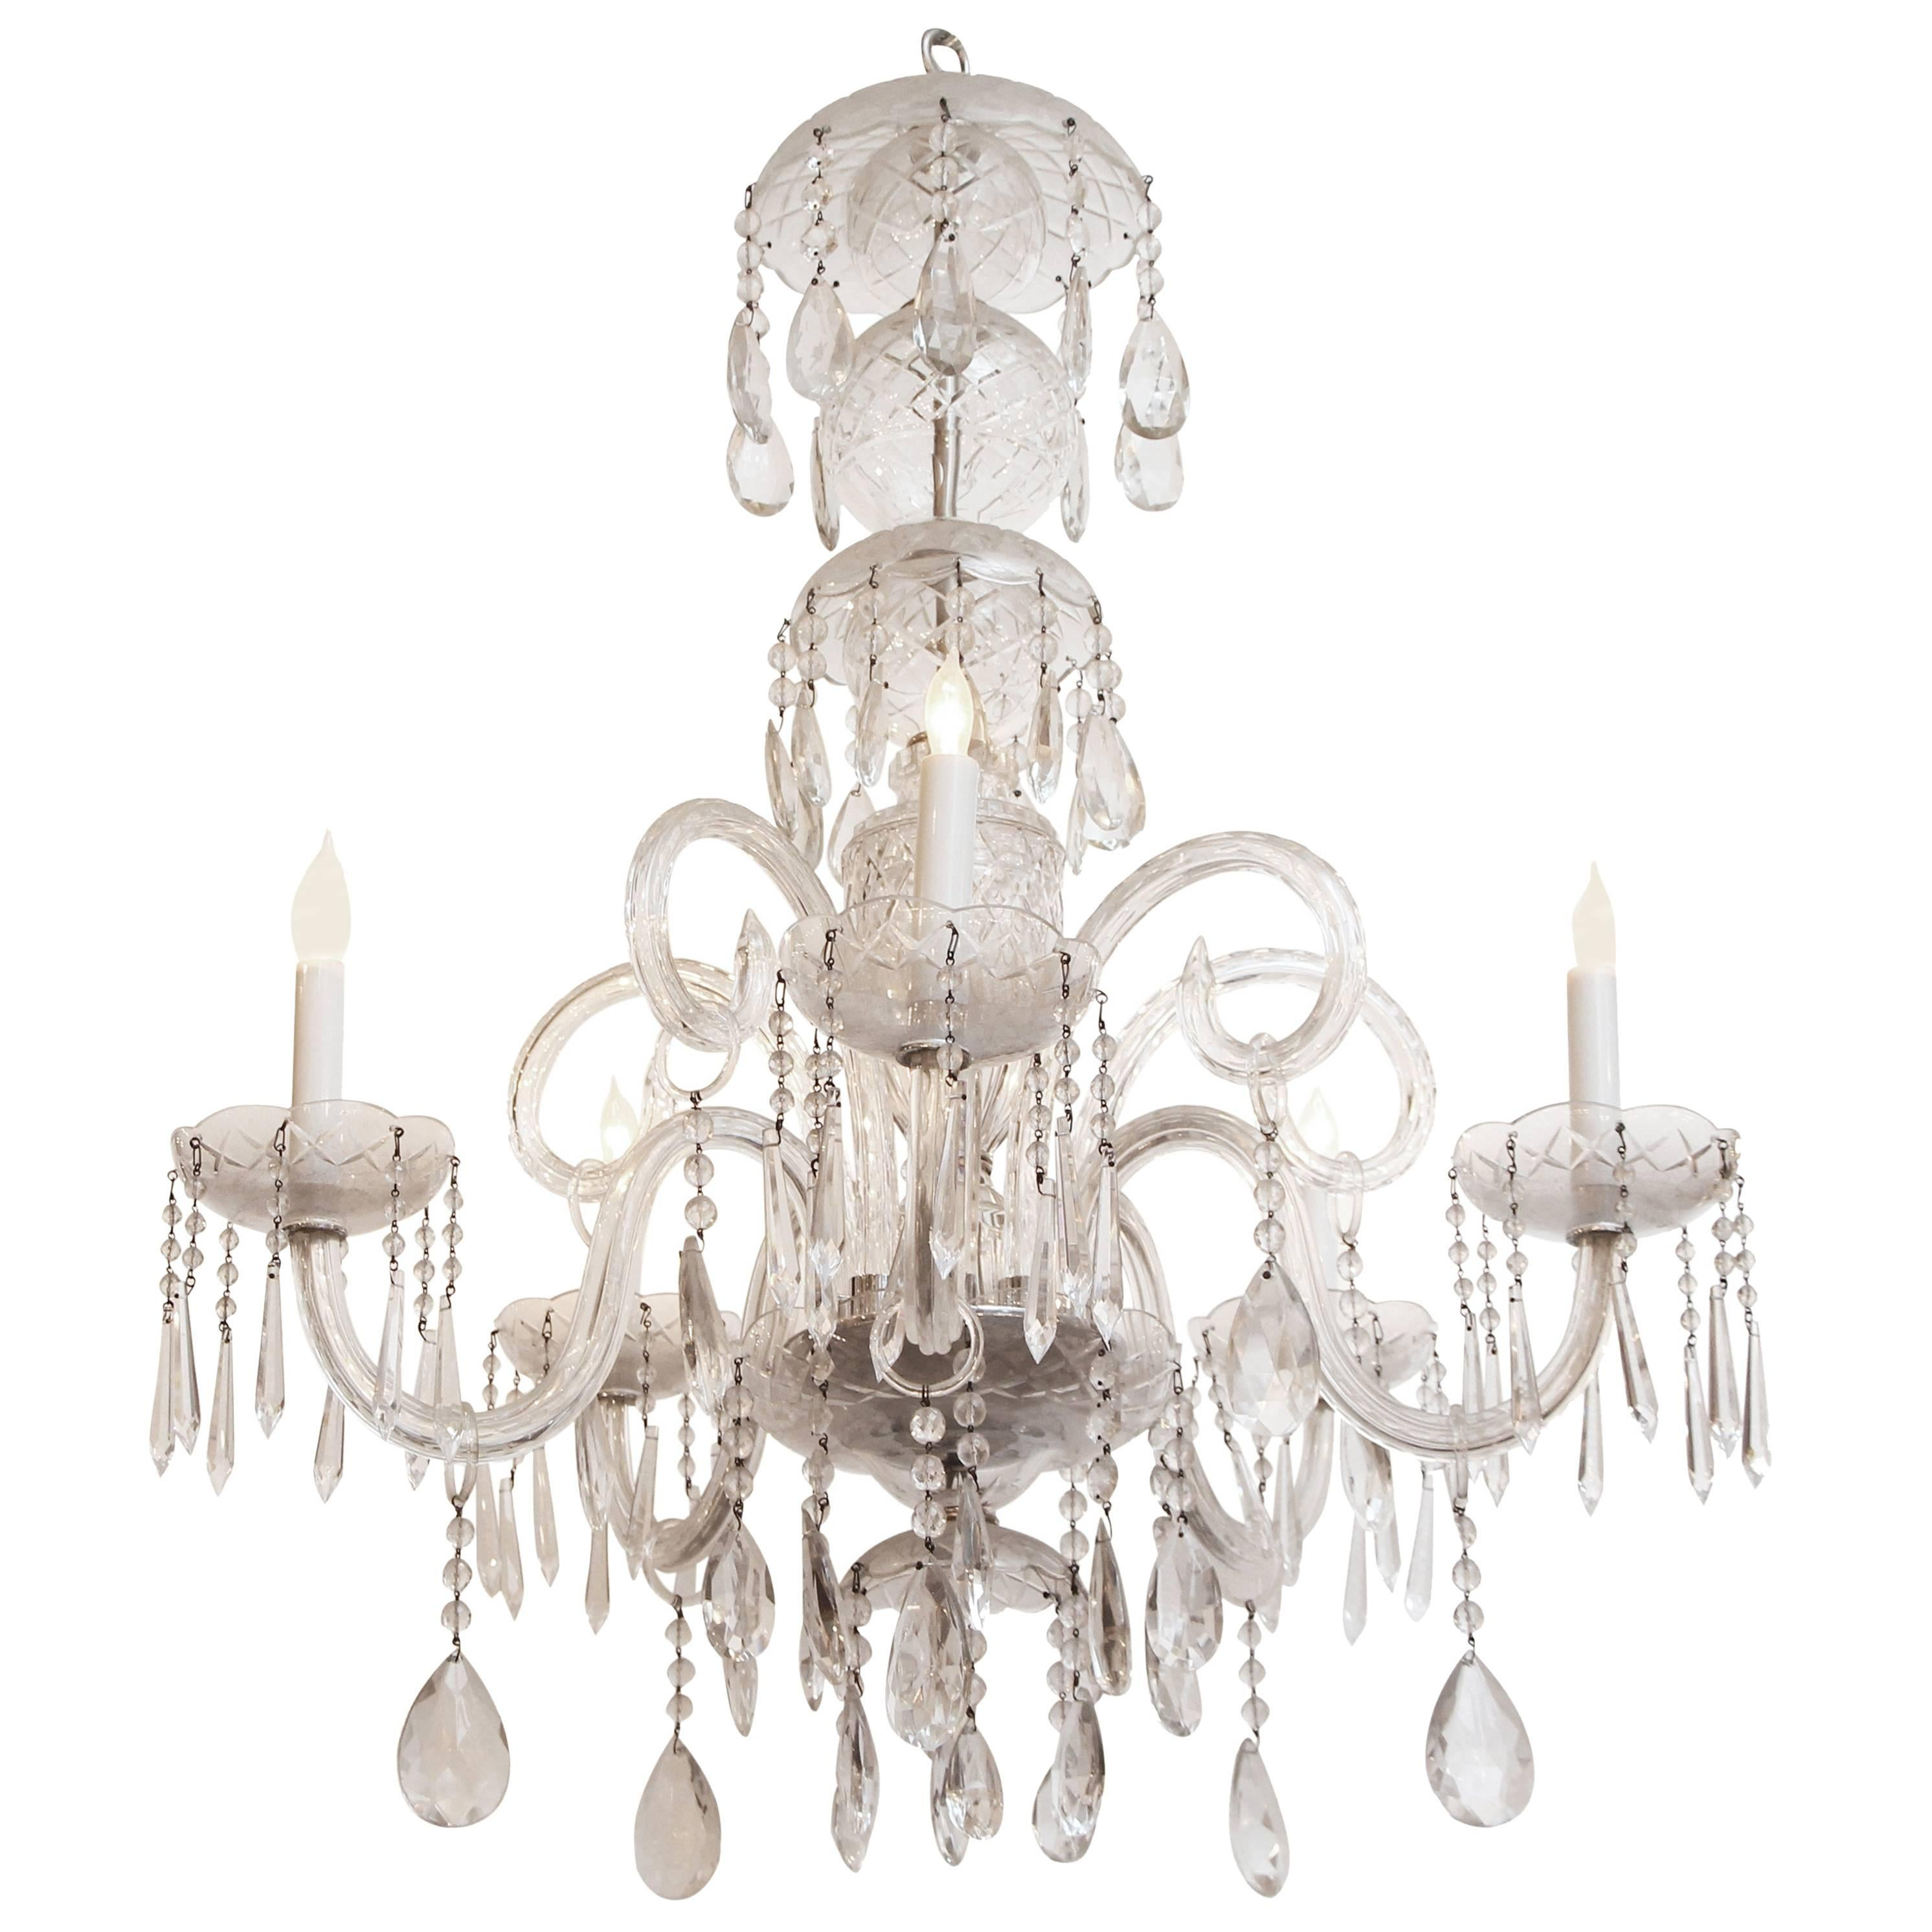 1940s Waterford Marie Therese Style Crystal Chandelier with Five Lights